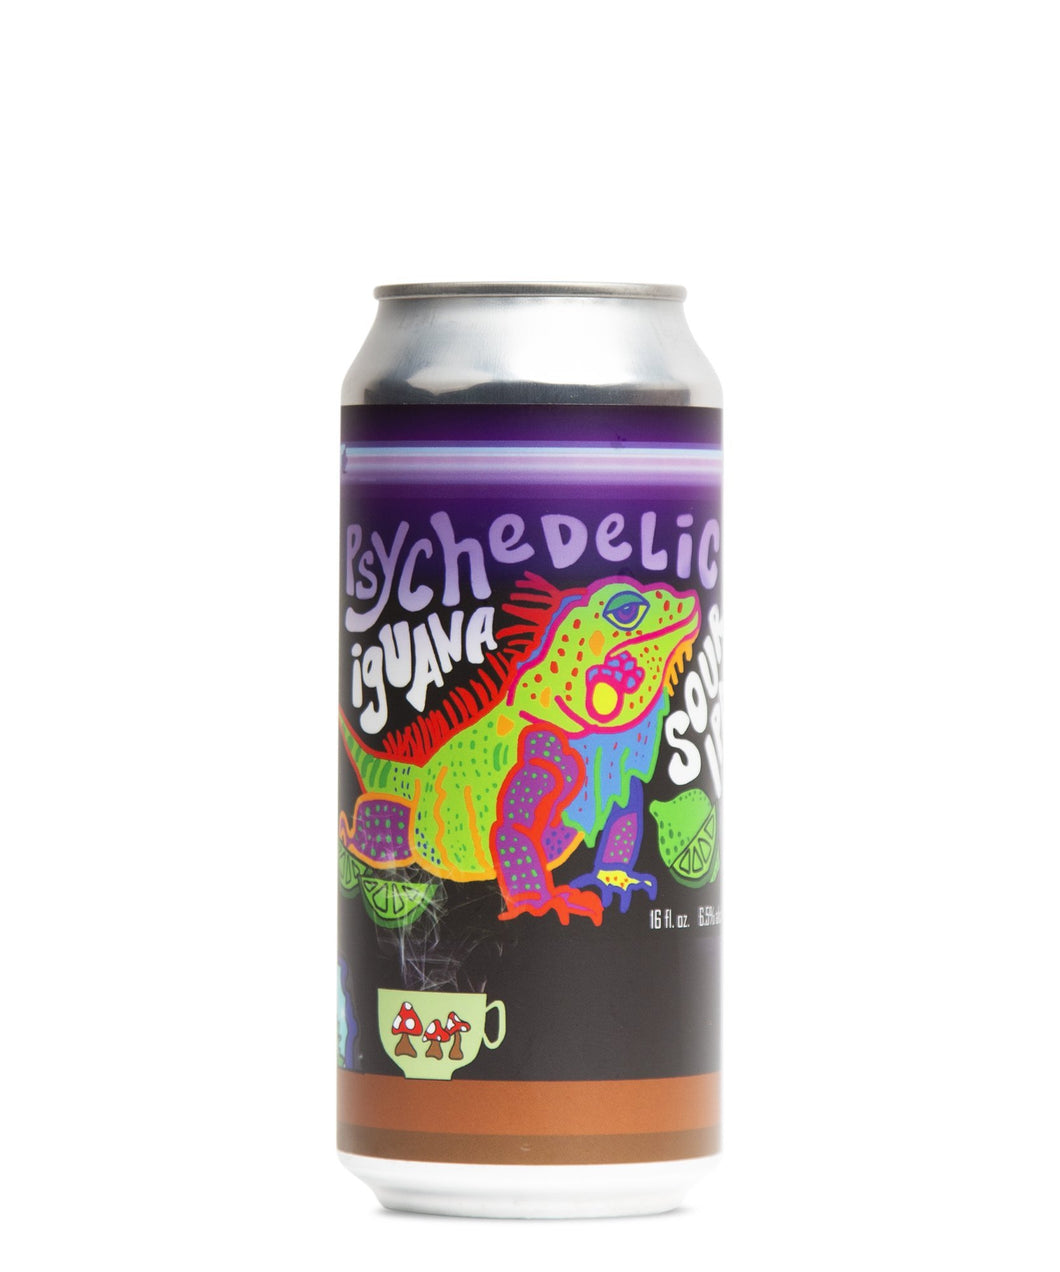 Psychedelic Iguana - 18th Ward Brewing Delivered By TapRm